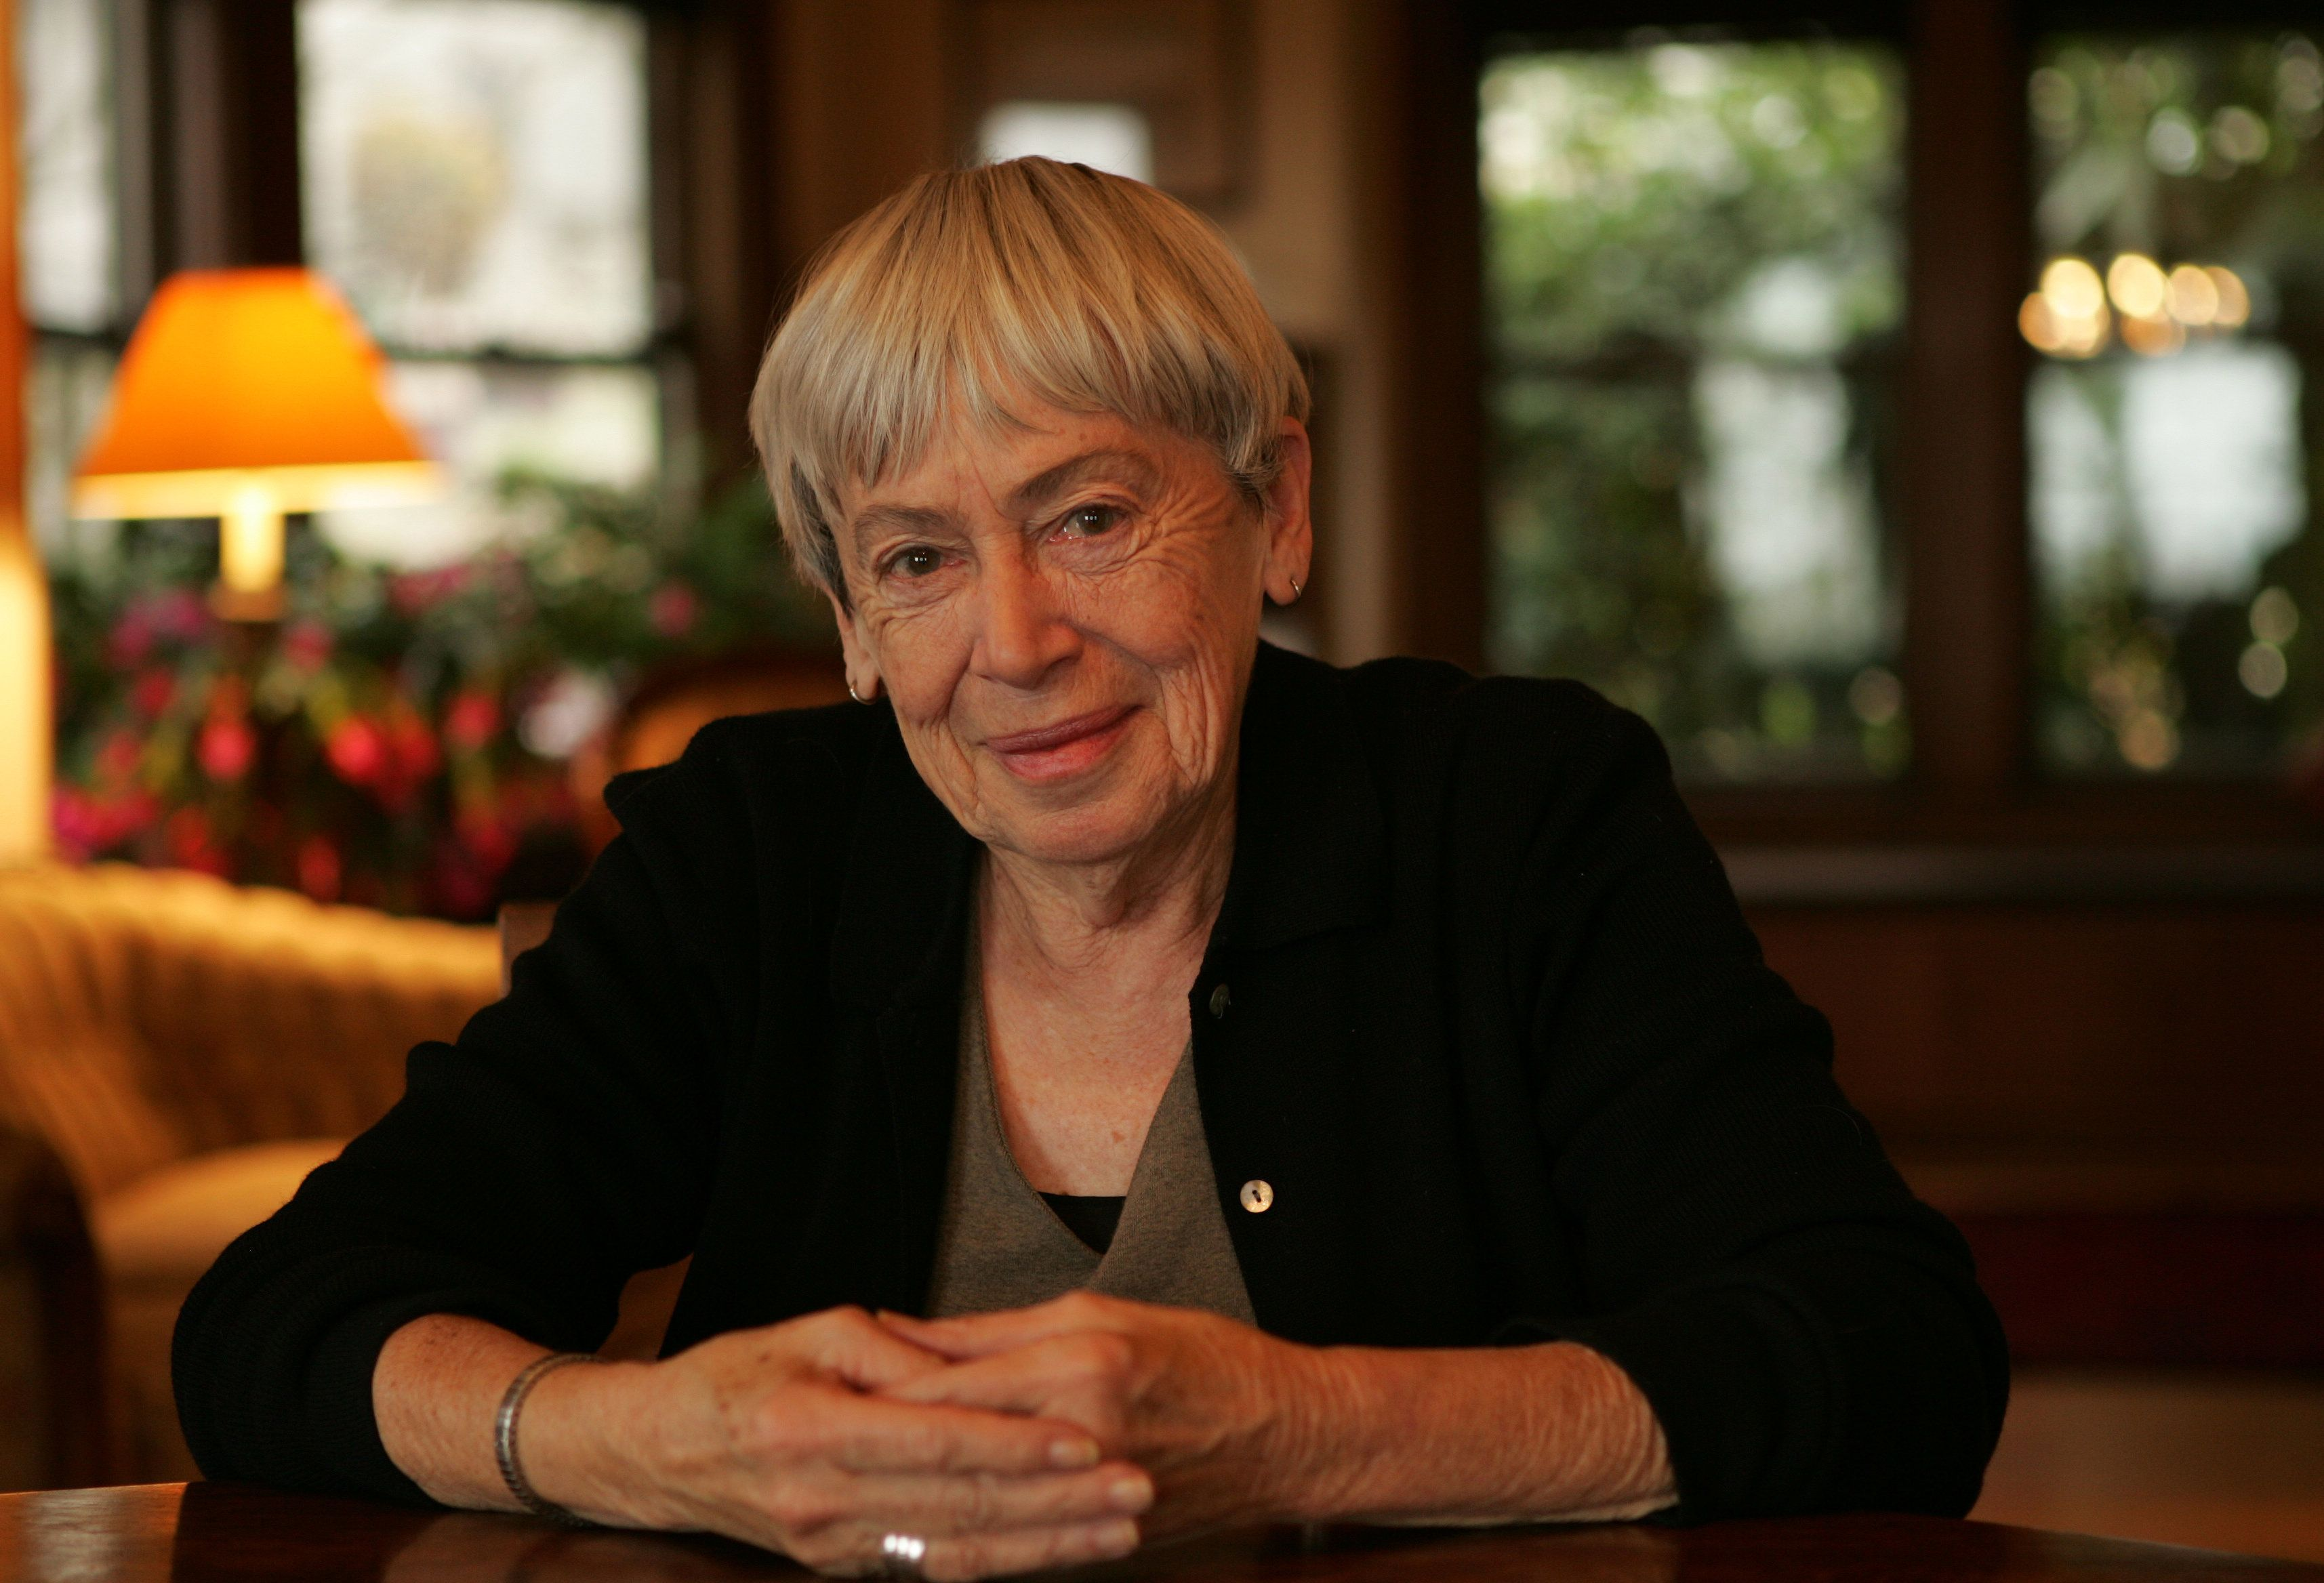 Ursula Le Guin's career spanned six decades and earned her a spot in the hearts of millions of readers.